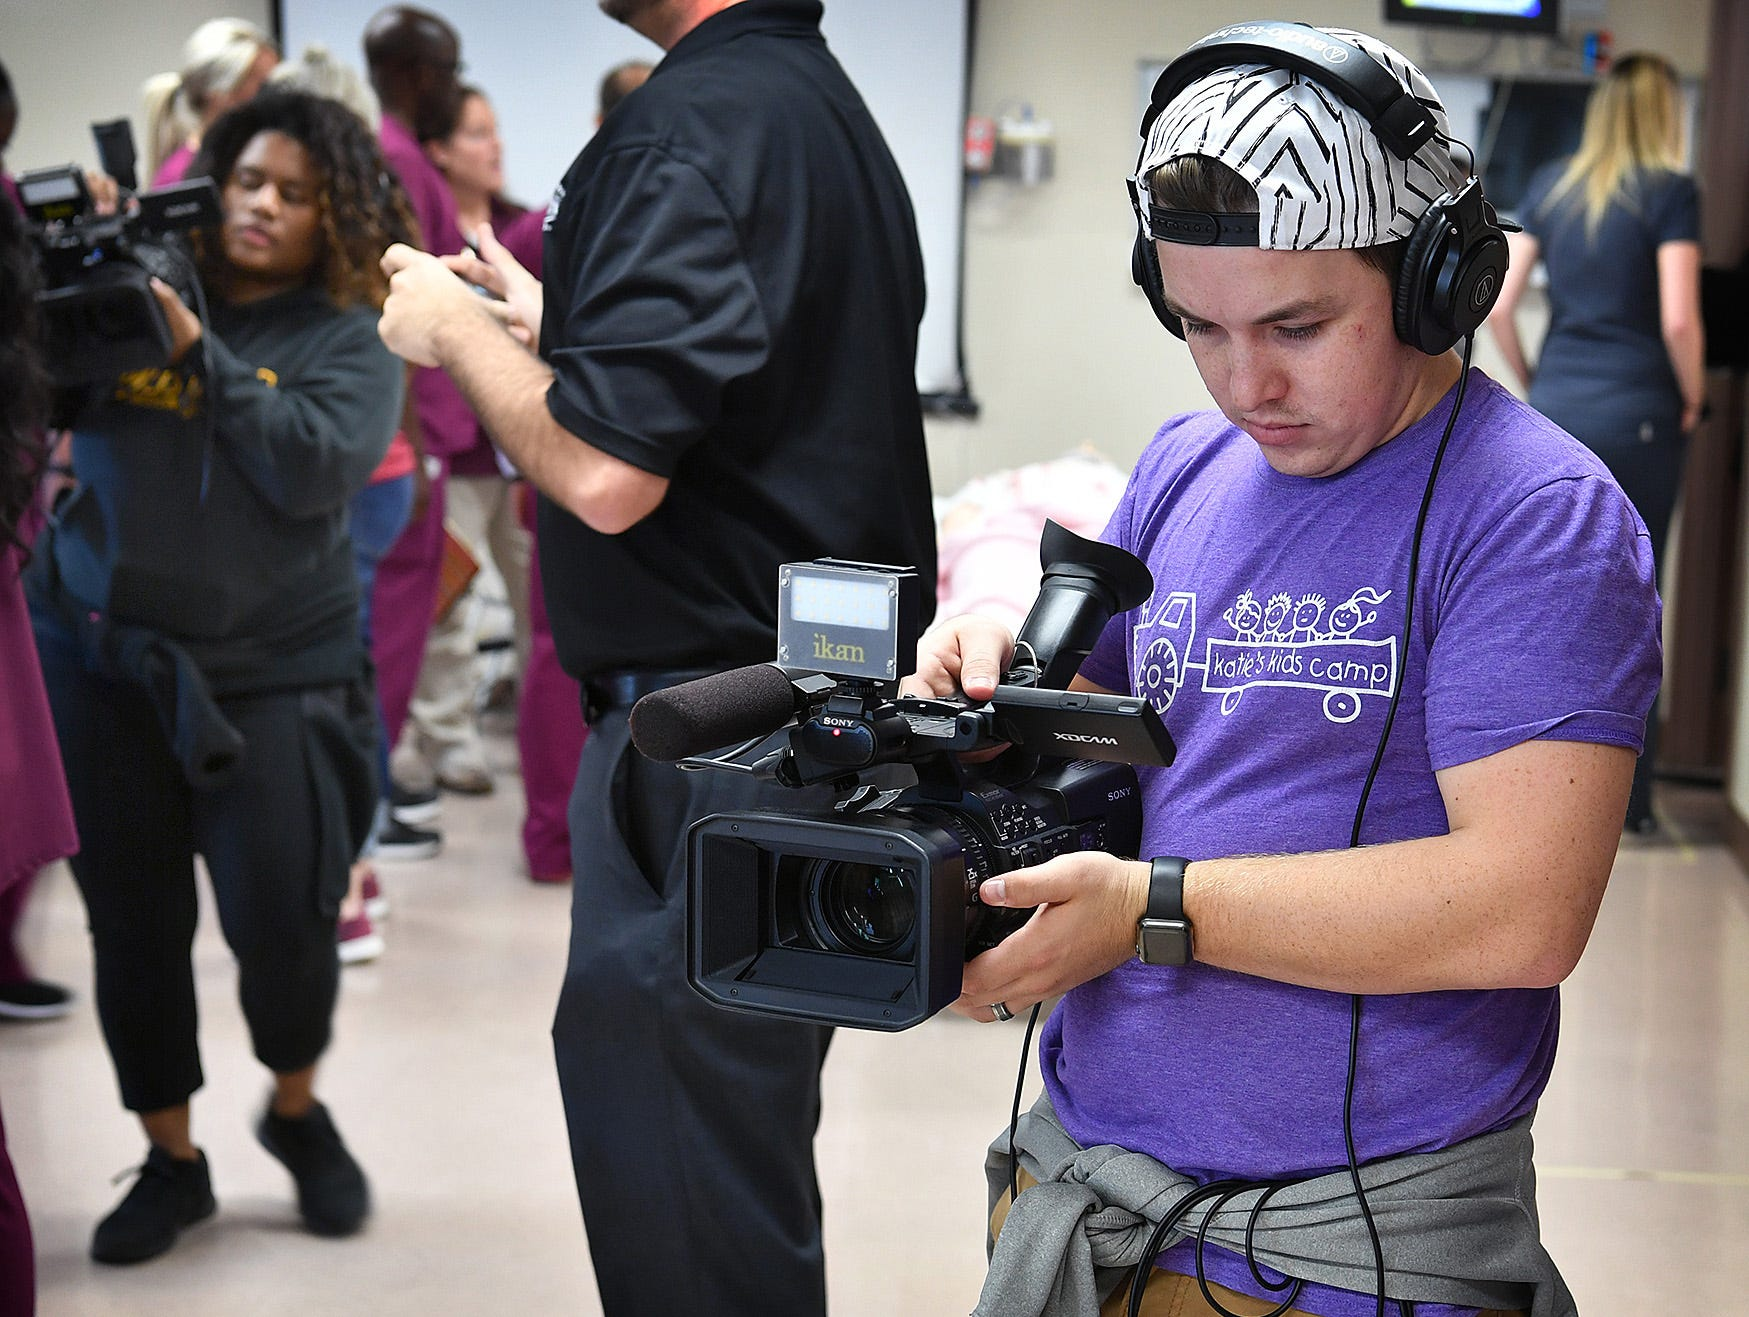 Mass Communications students participate in the Midwestern State University Interdisciplinary Communications Event Friday morning. The simulation involved two people critically injured in a bar fight and students from Nursing, Respiratory, Social Work, Mass Communications, Radiology and Theater.